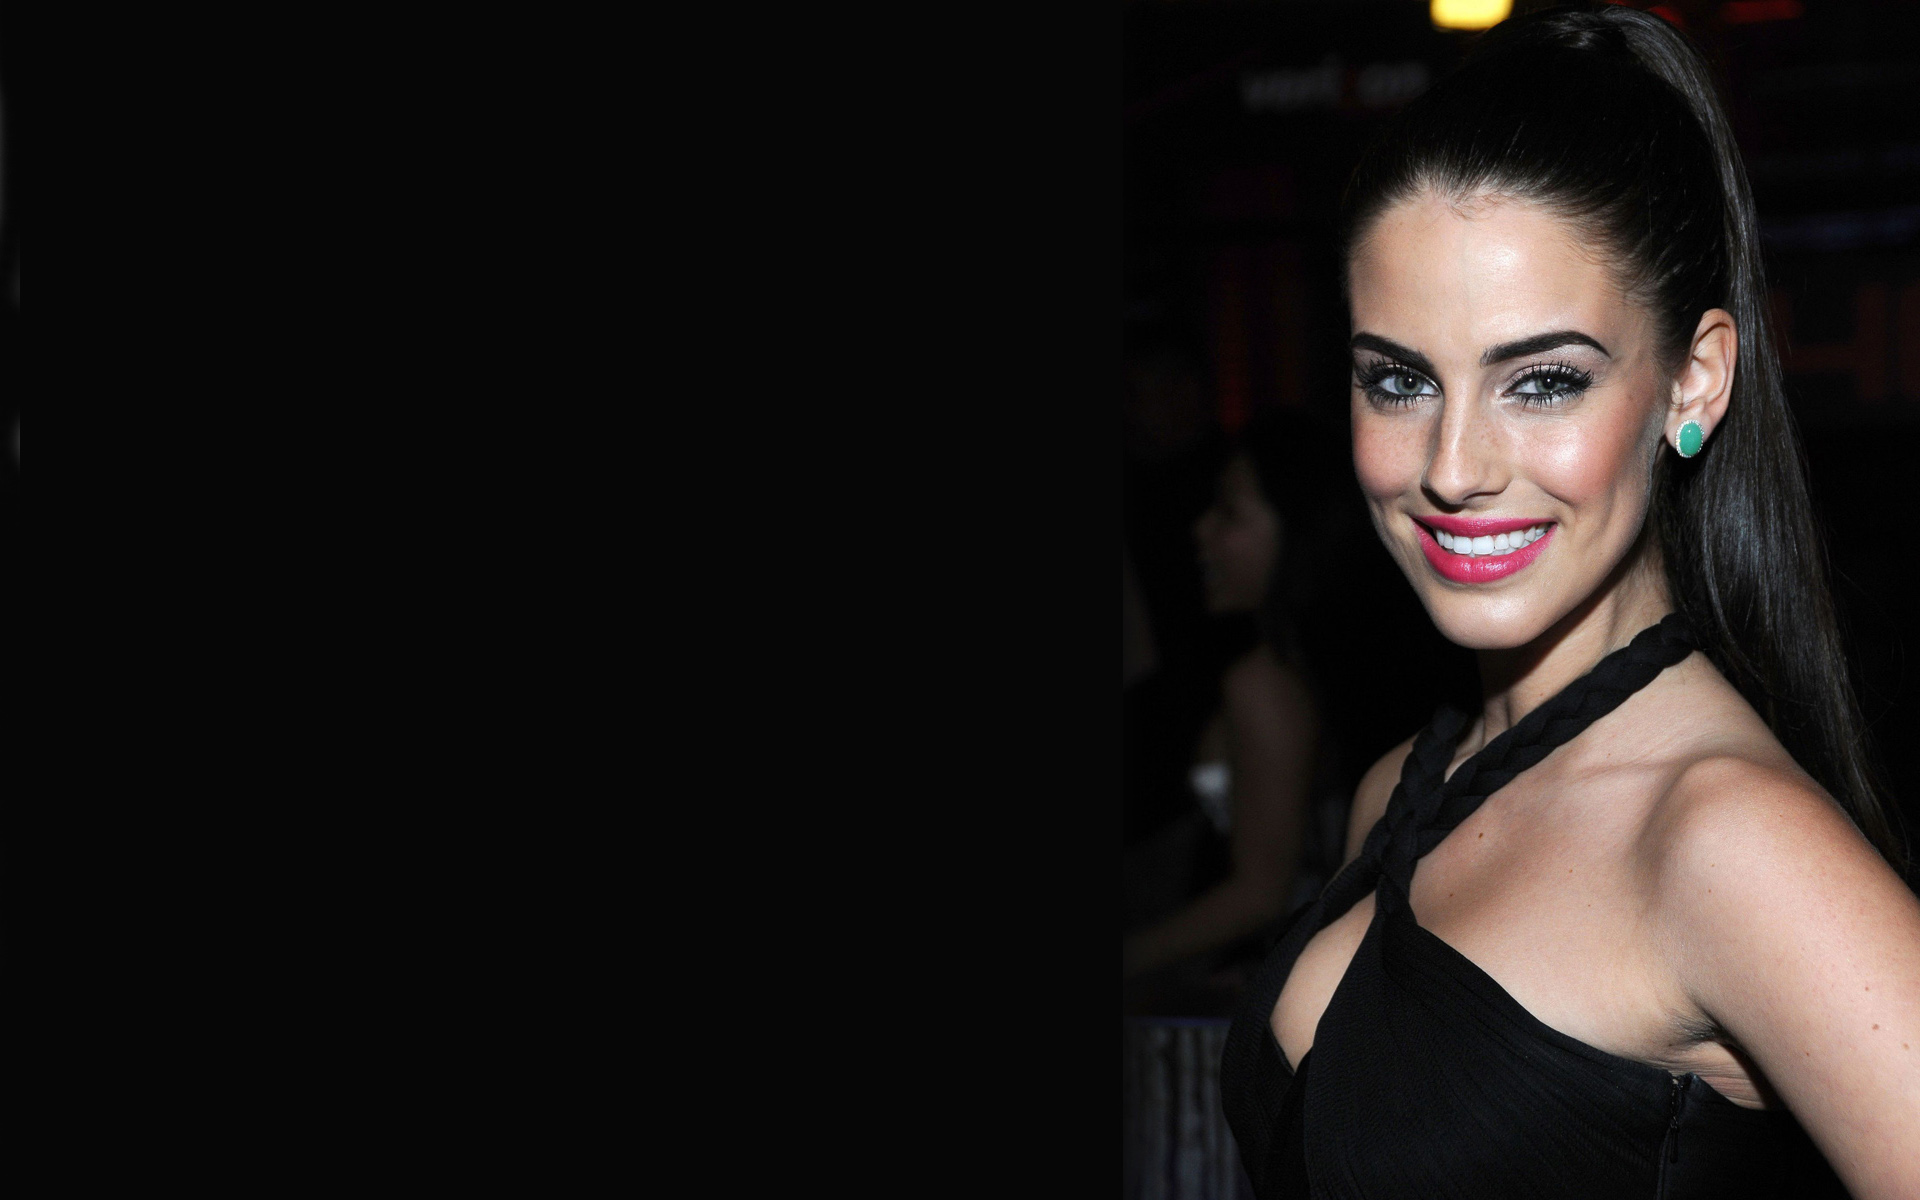 1920x1200 - Jessica Lowndes Wallpapers 27